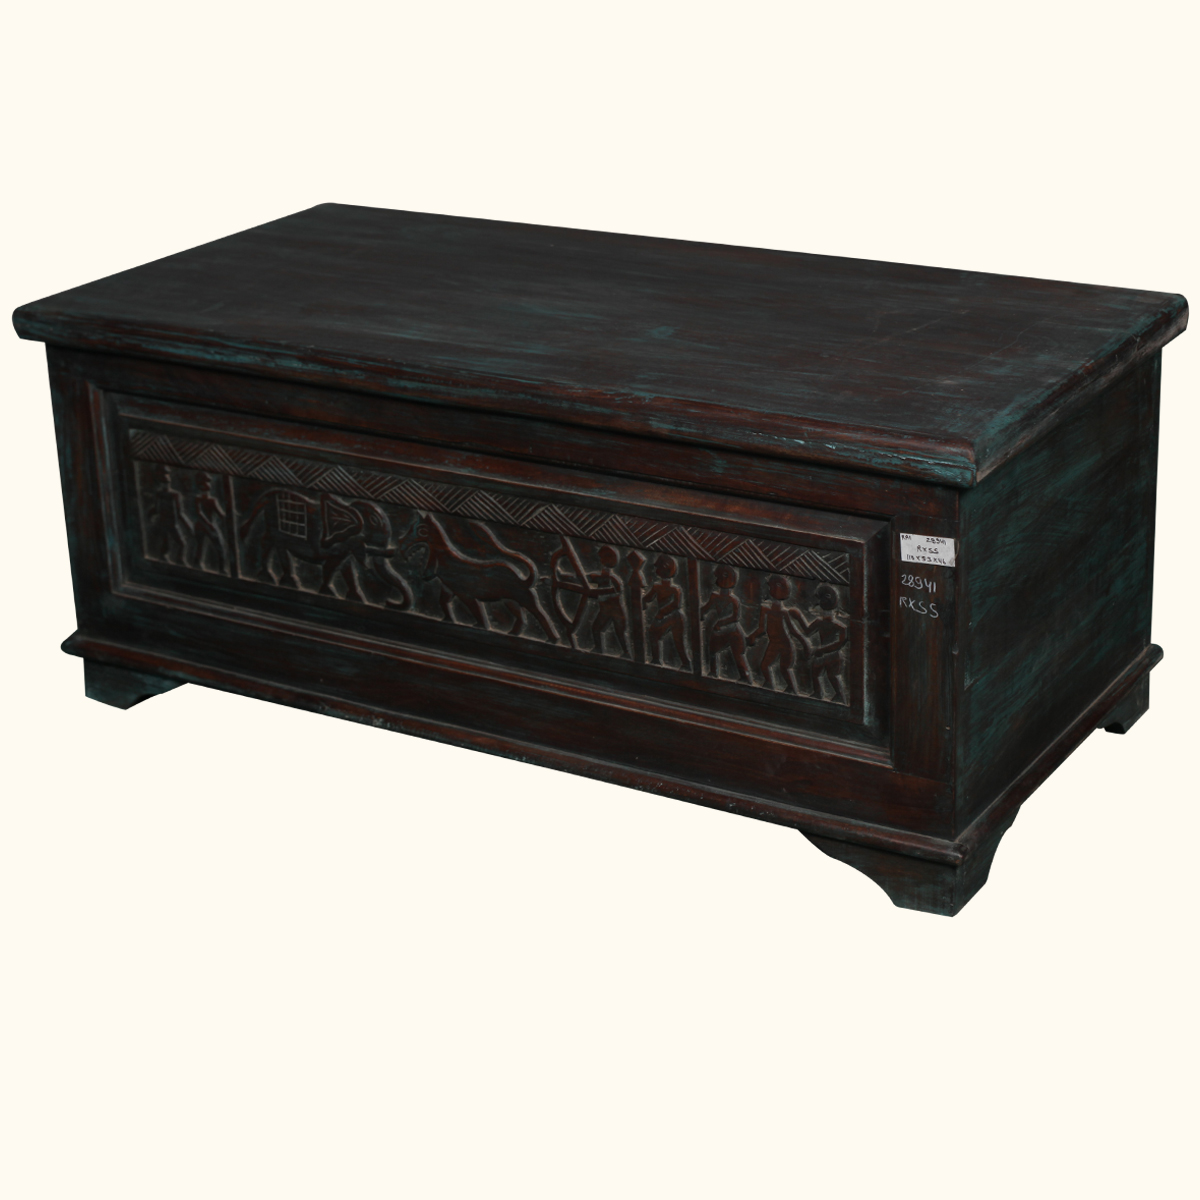 Solid mango wood hand carved storage coffee table chest trunk blanket hope box ebay Coffee table chest with storage